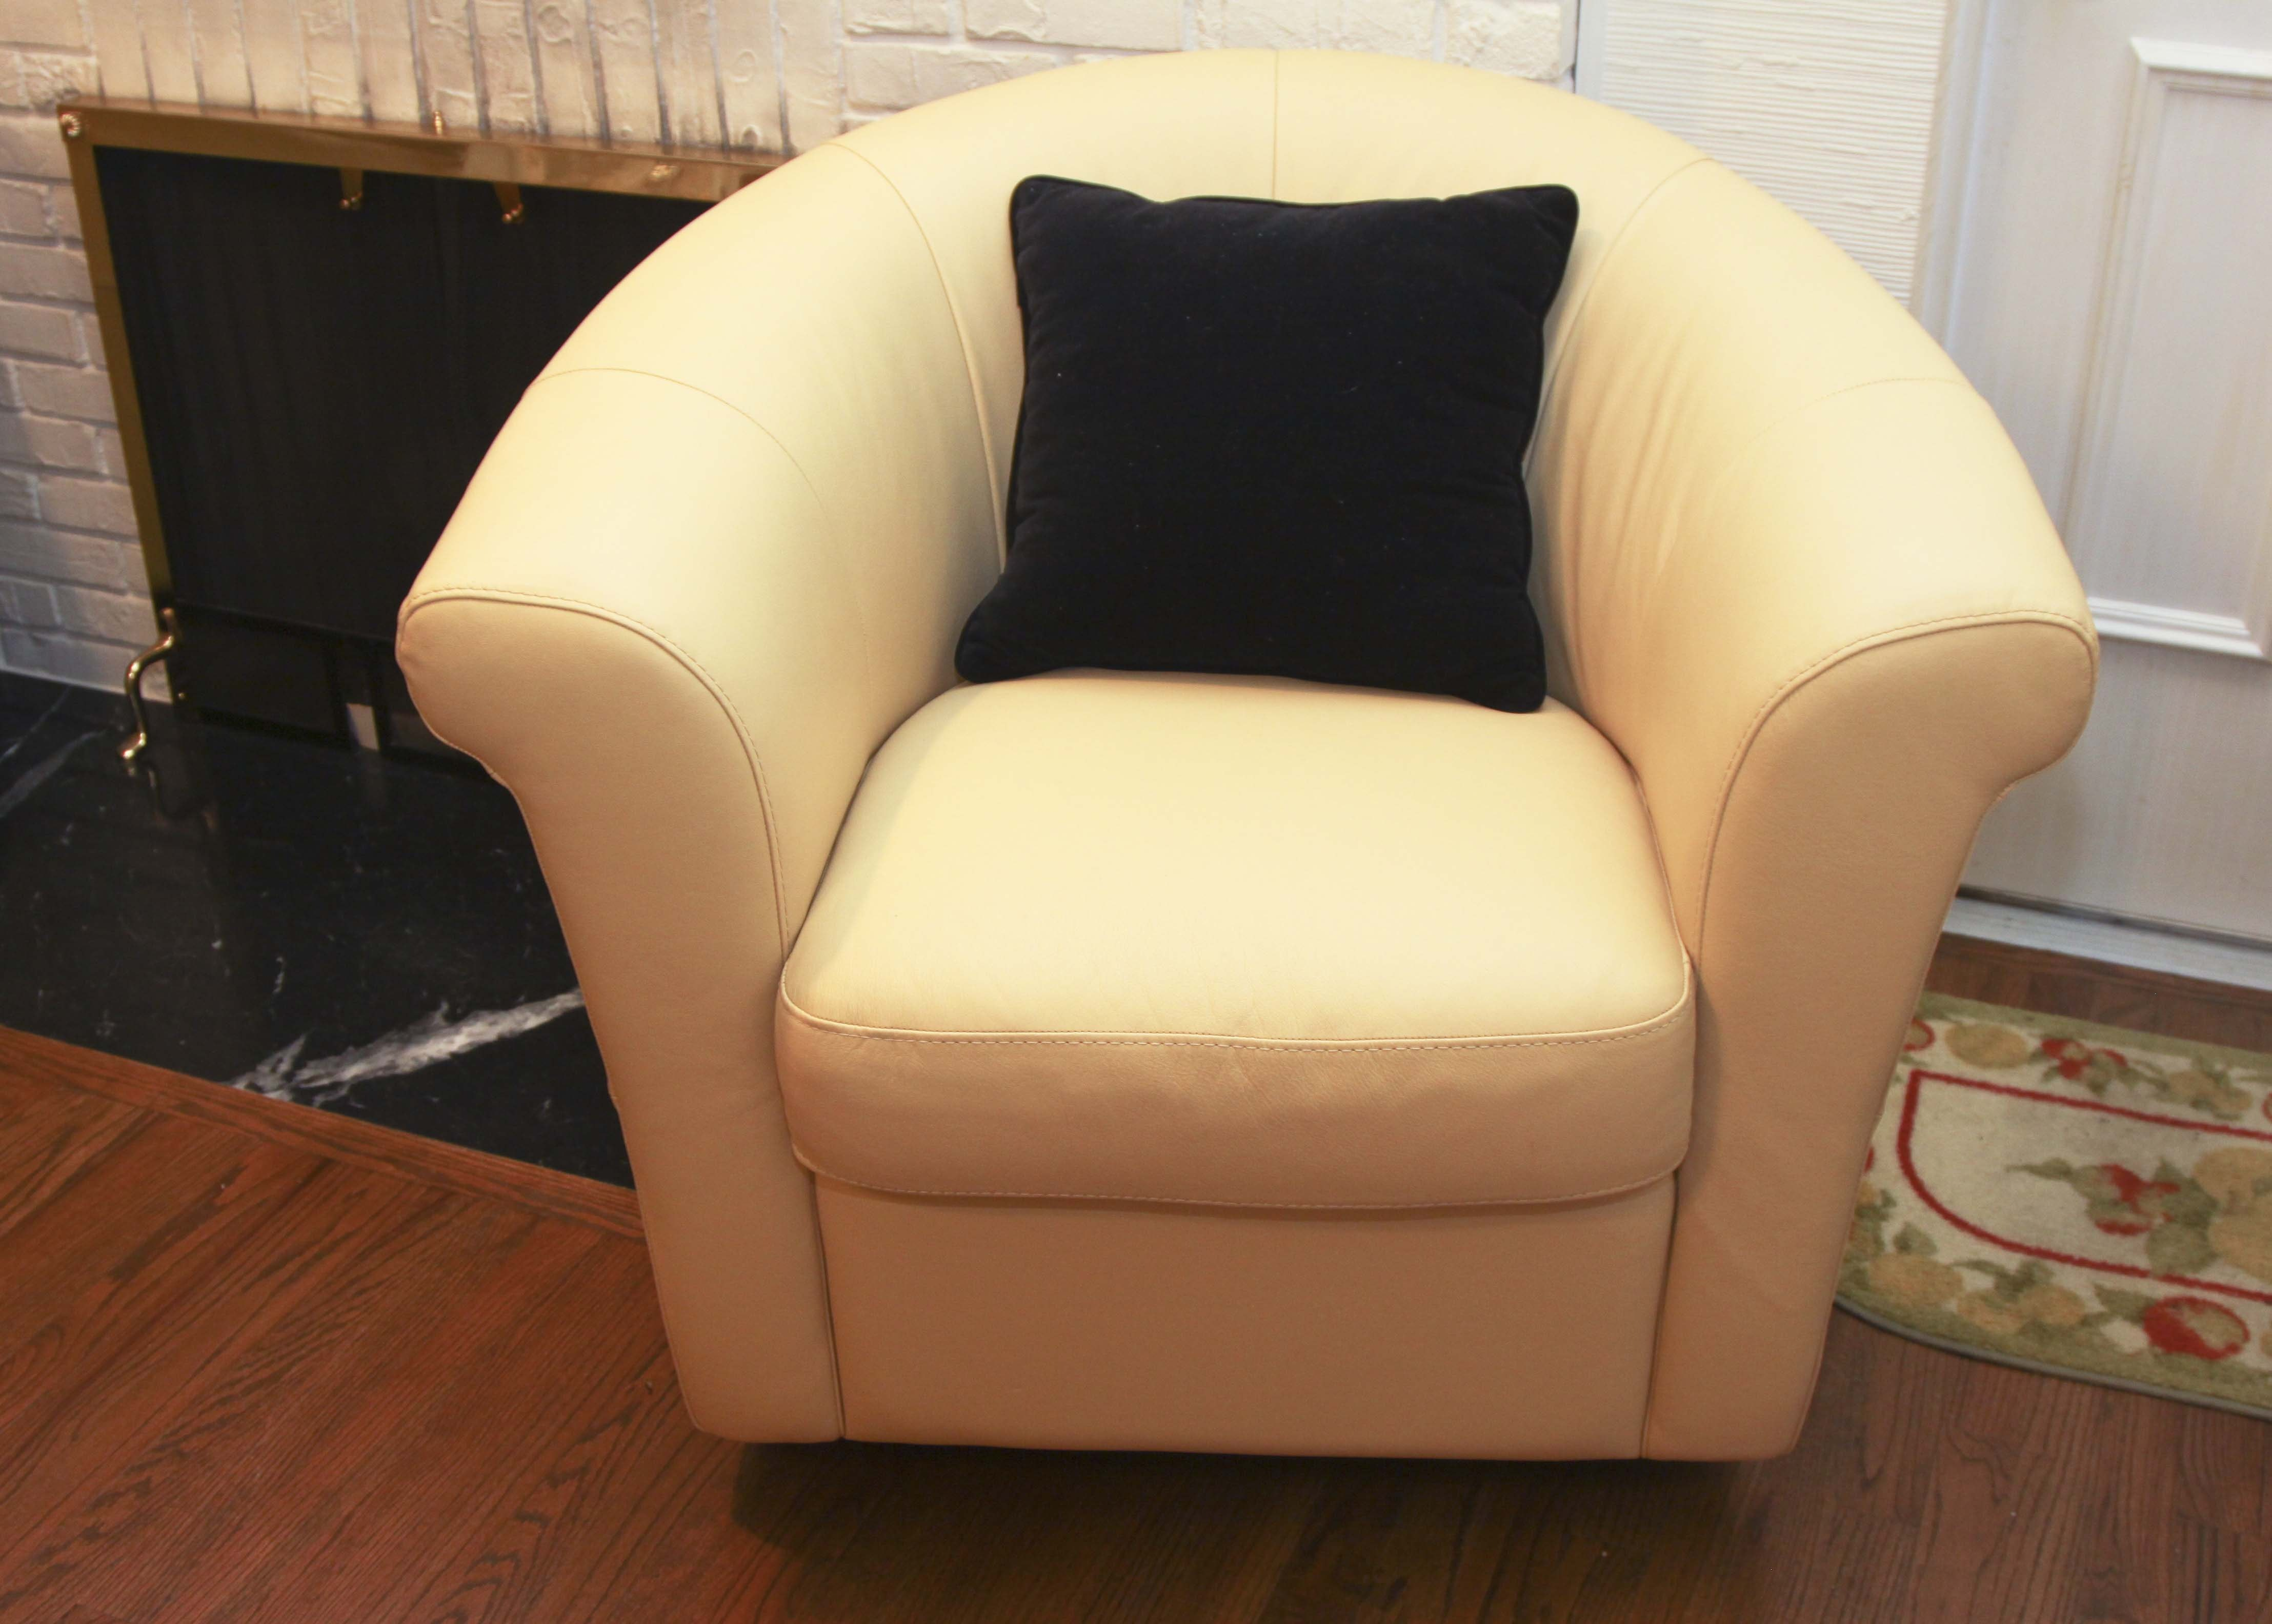 Italsofa Buttercup Yellow Leather Swivel Chair ...